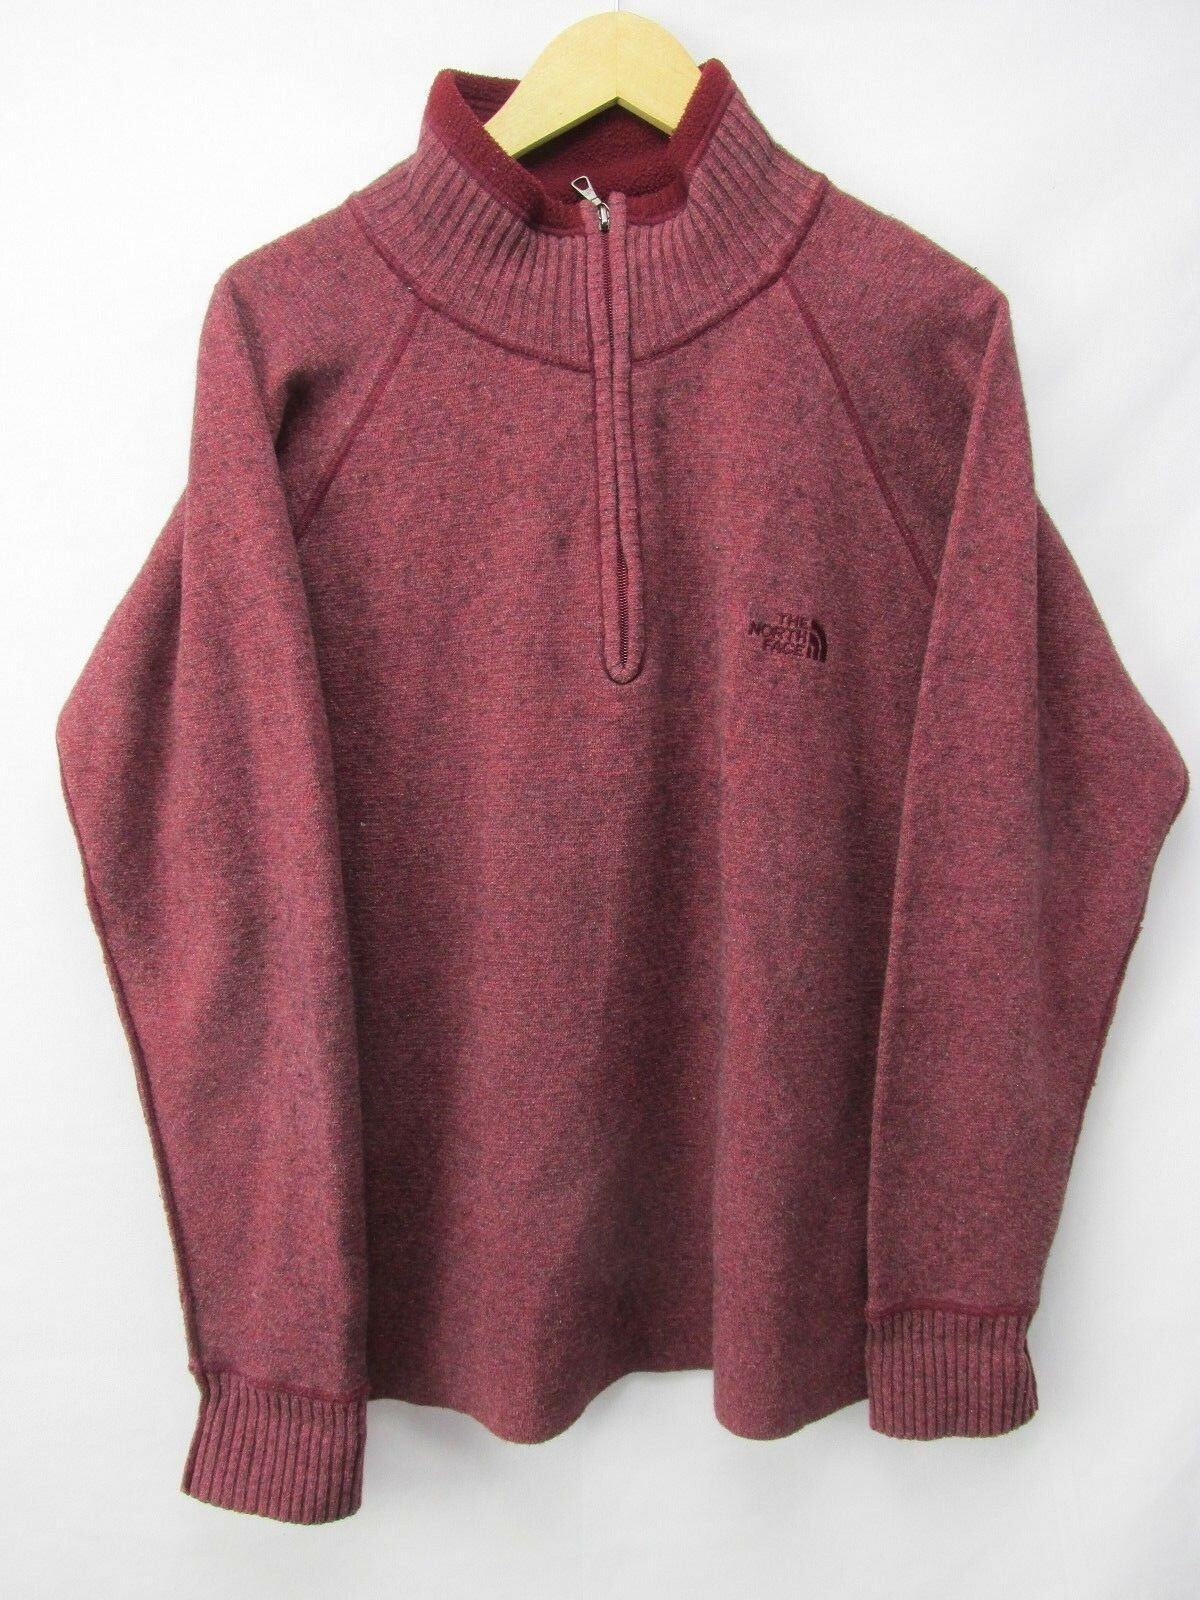 The North Face 1 4 Zip Lite Maroon Wool blend Sweater Fleece Shirt Mens M. NY21